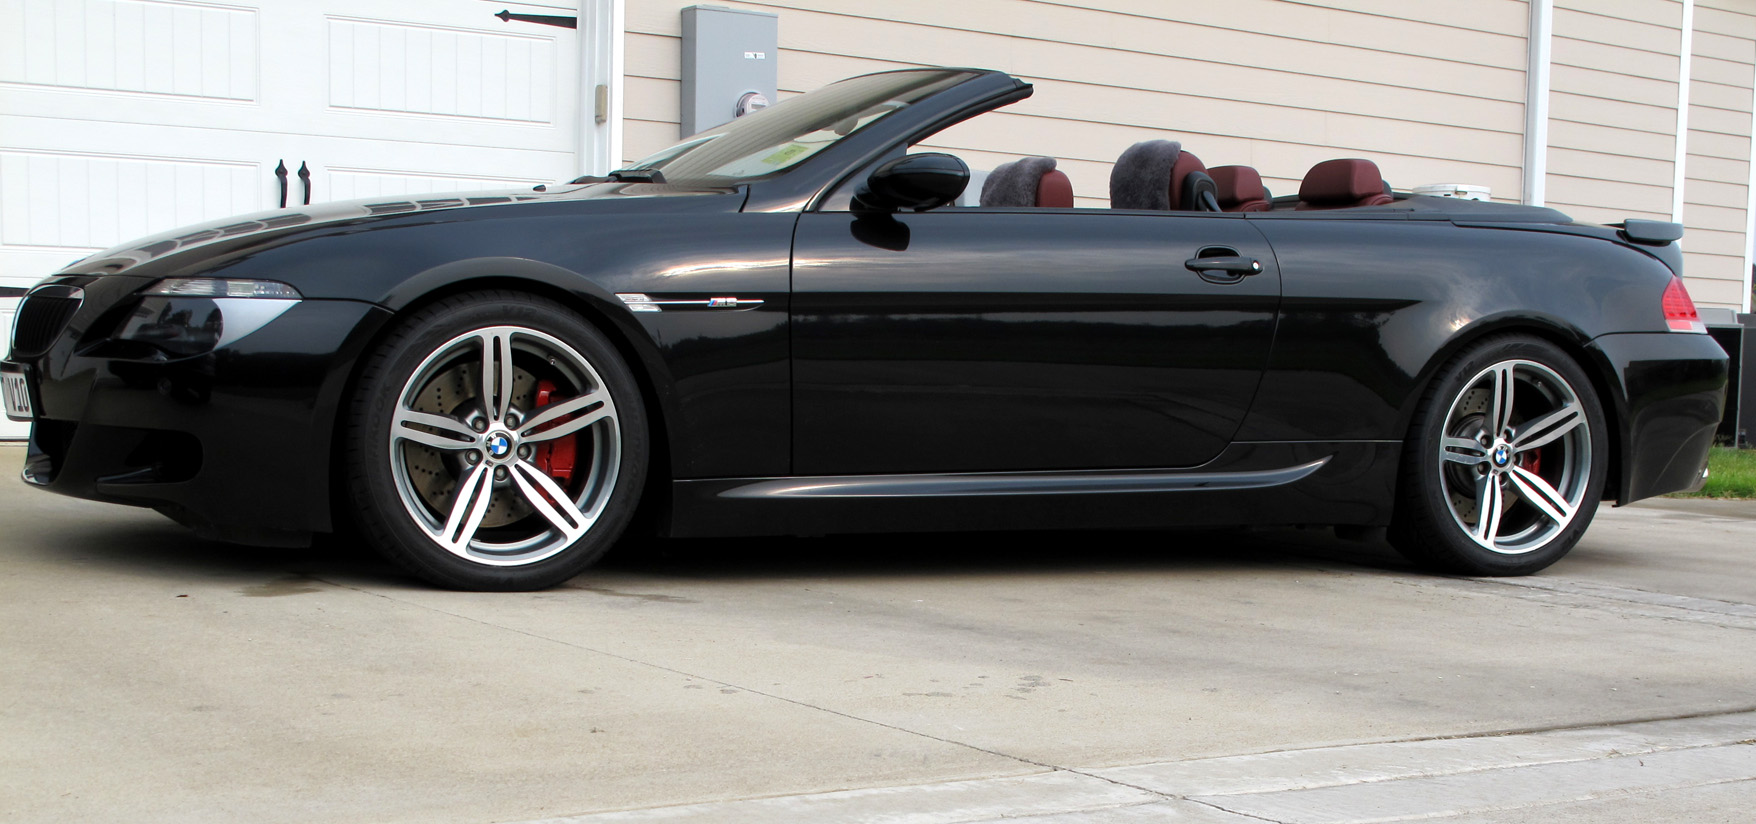 Member NCM6Cabrio 2007 BMW M6 Convertible Sapphire Black - Page 10 ...